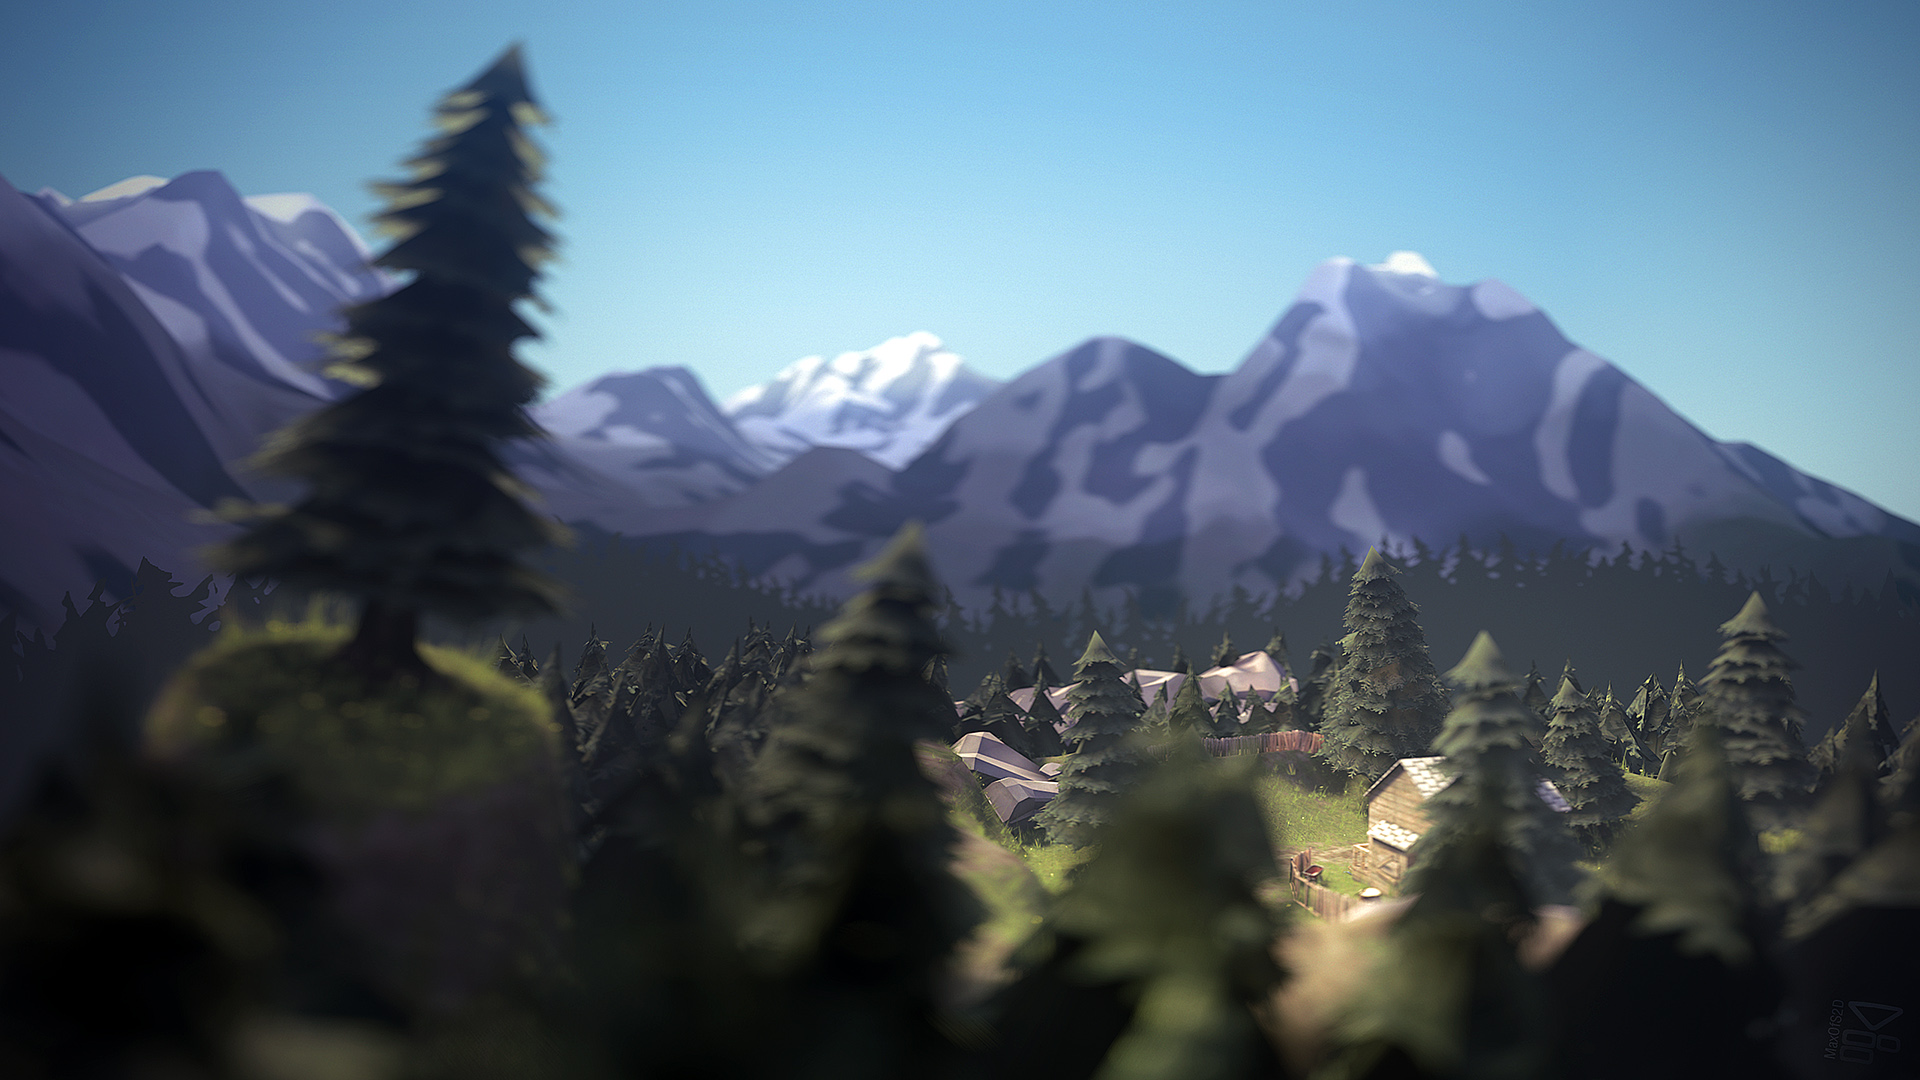 Need help with alpine map having trouble finding textures